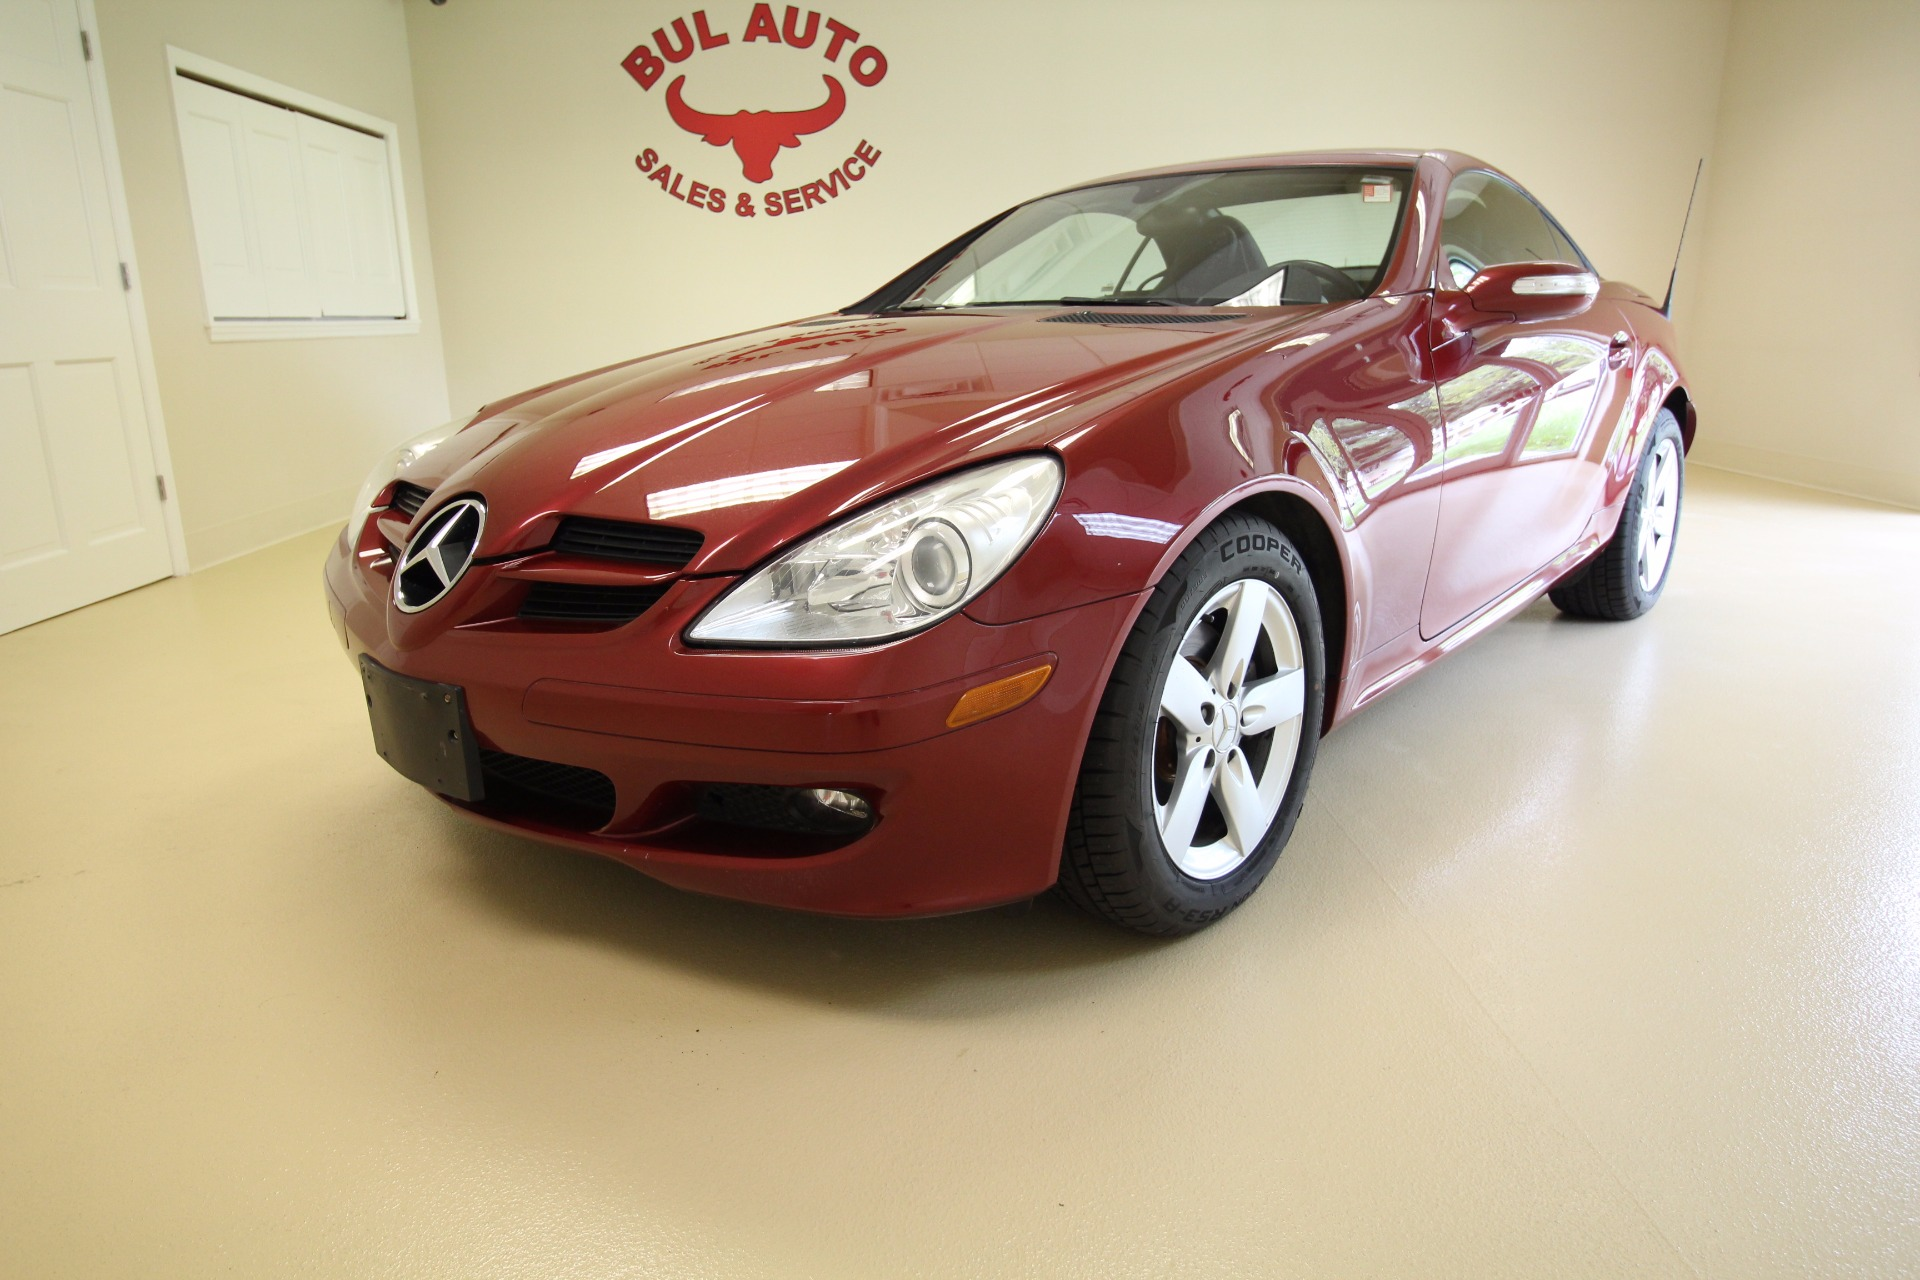 2006 mercedes benz slk slk280 stock 17144 for sale near for Albany mercedes benz